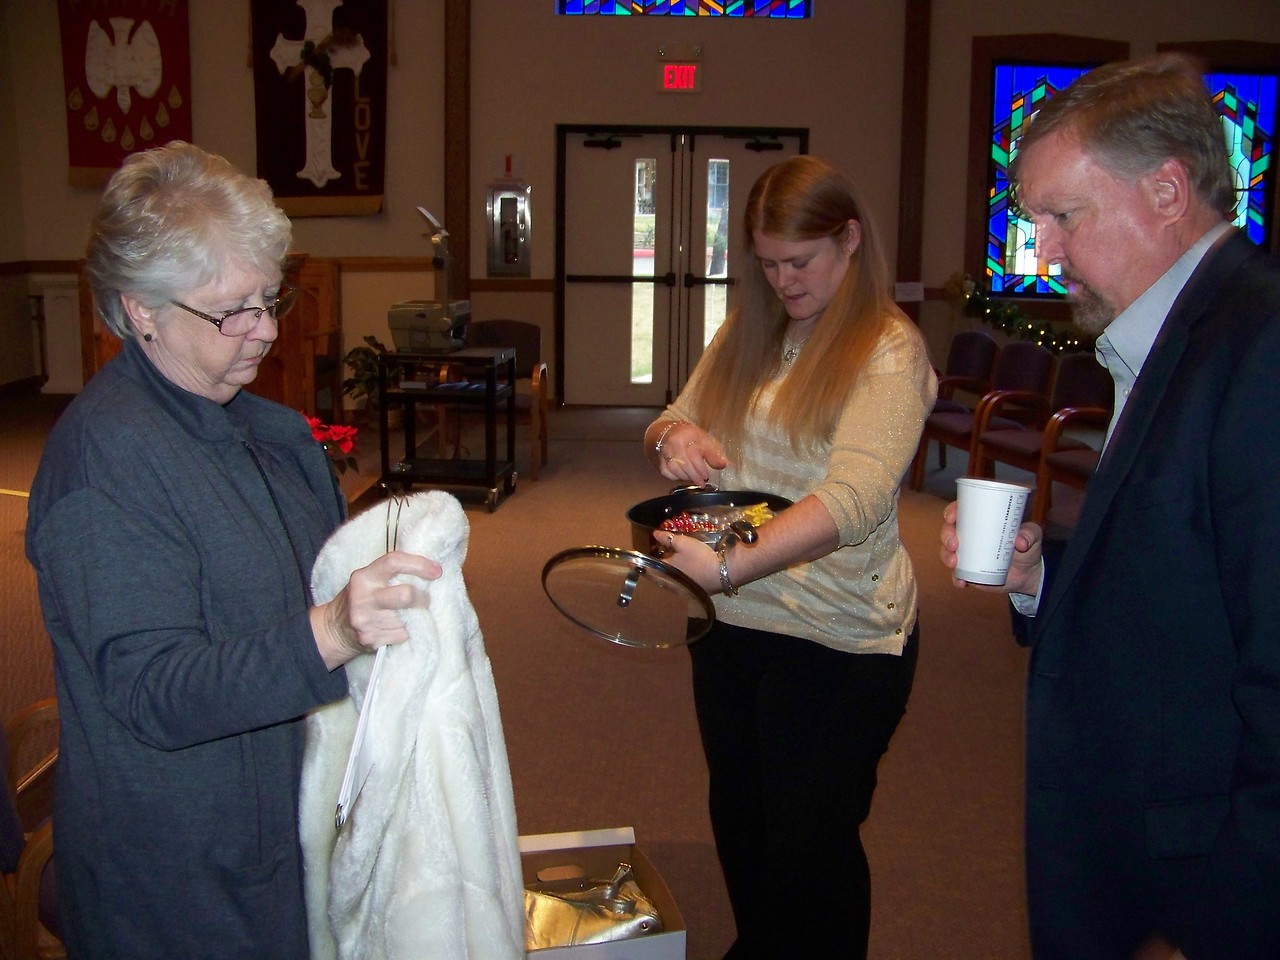 Sheri (at left, with Jenna and Mark) handled the lion's share of the arrangements for Aunt Pet's memorial.  They were setting up some of her signature belongings for the service.